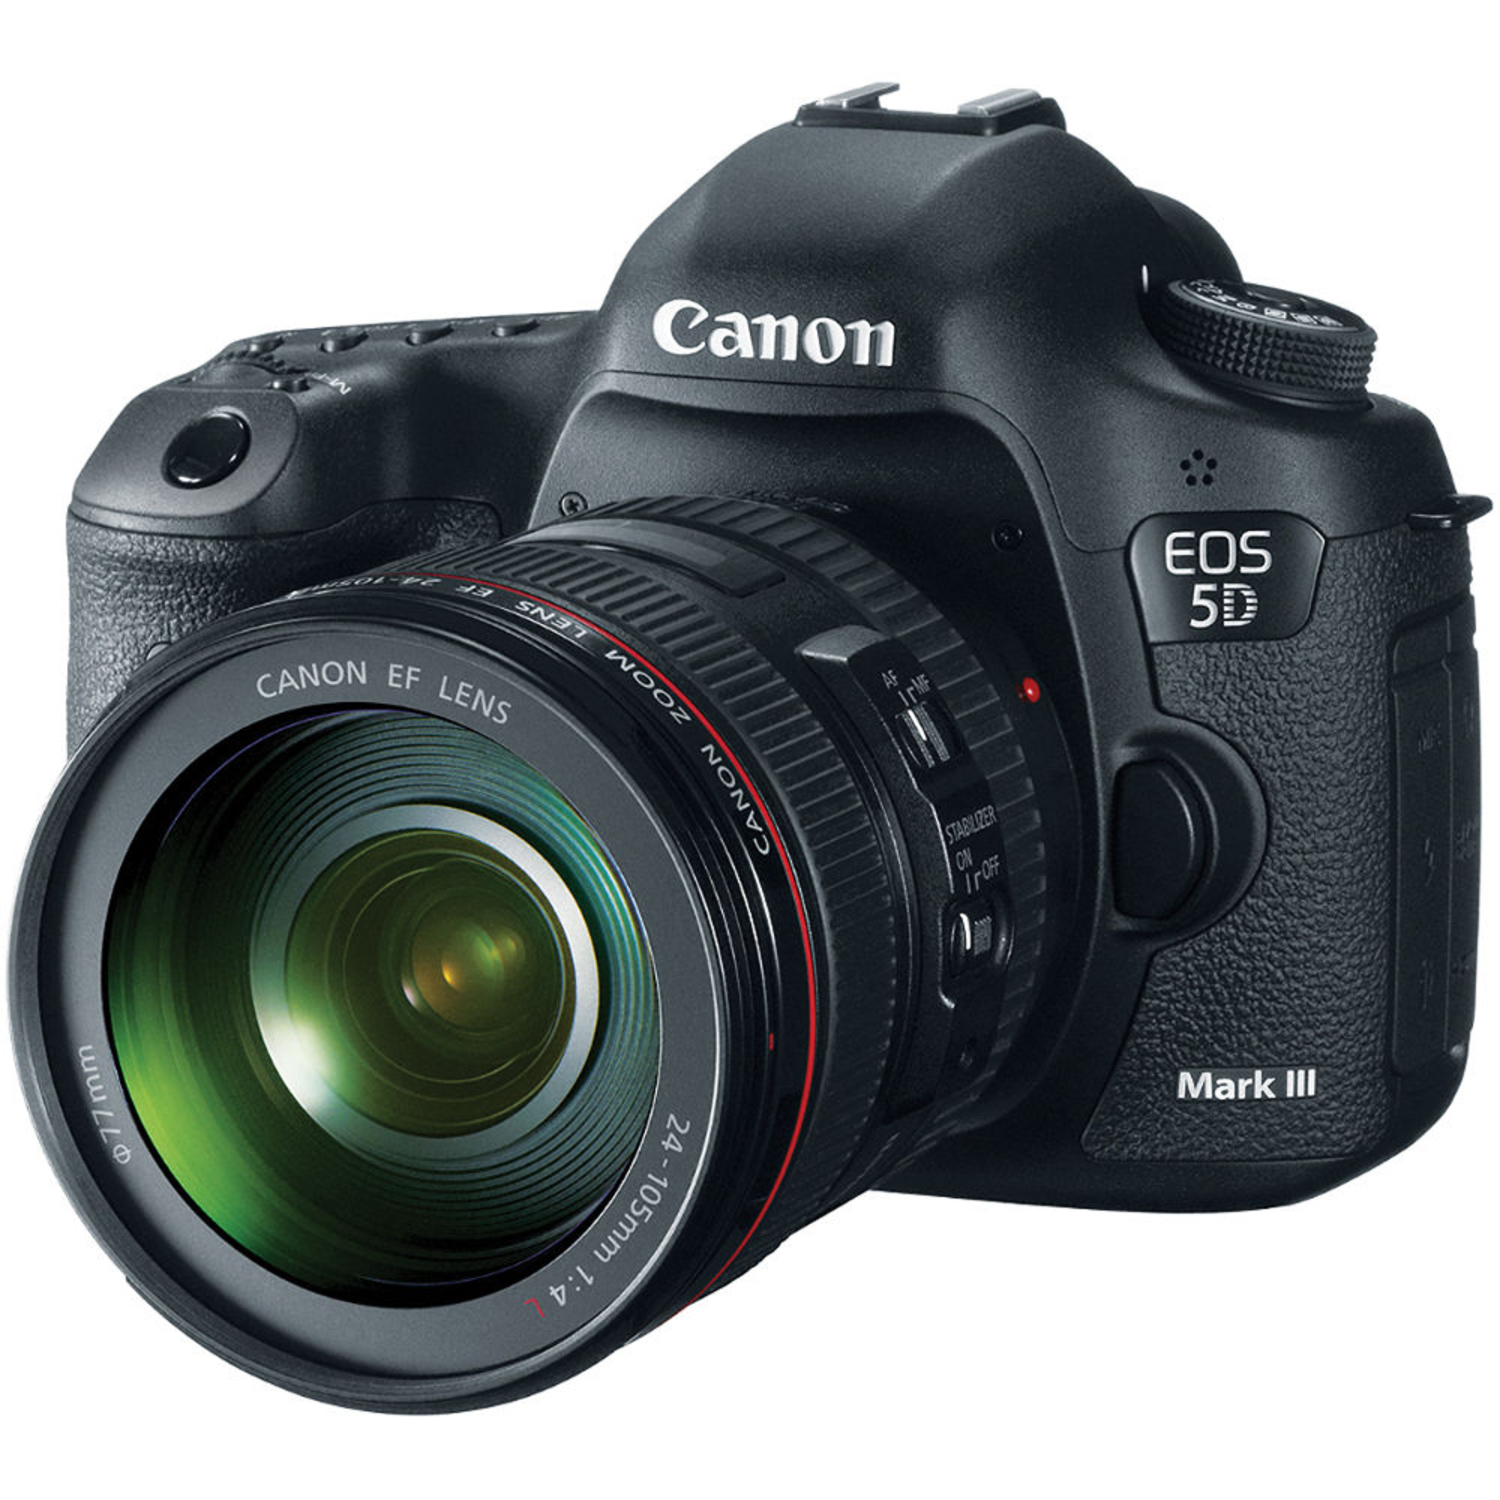 8 Reasons Not To Buy The Canon EOS 5D Mark III